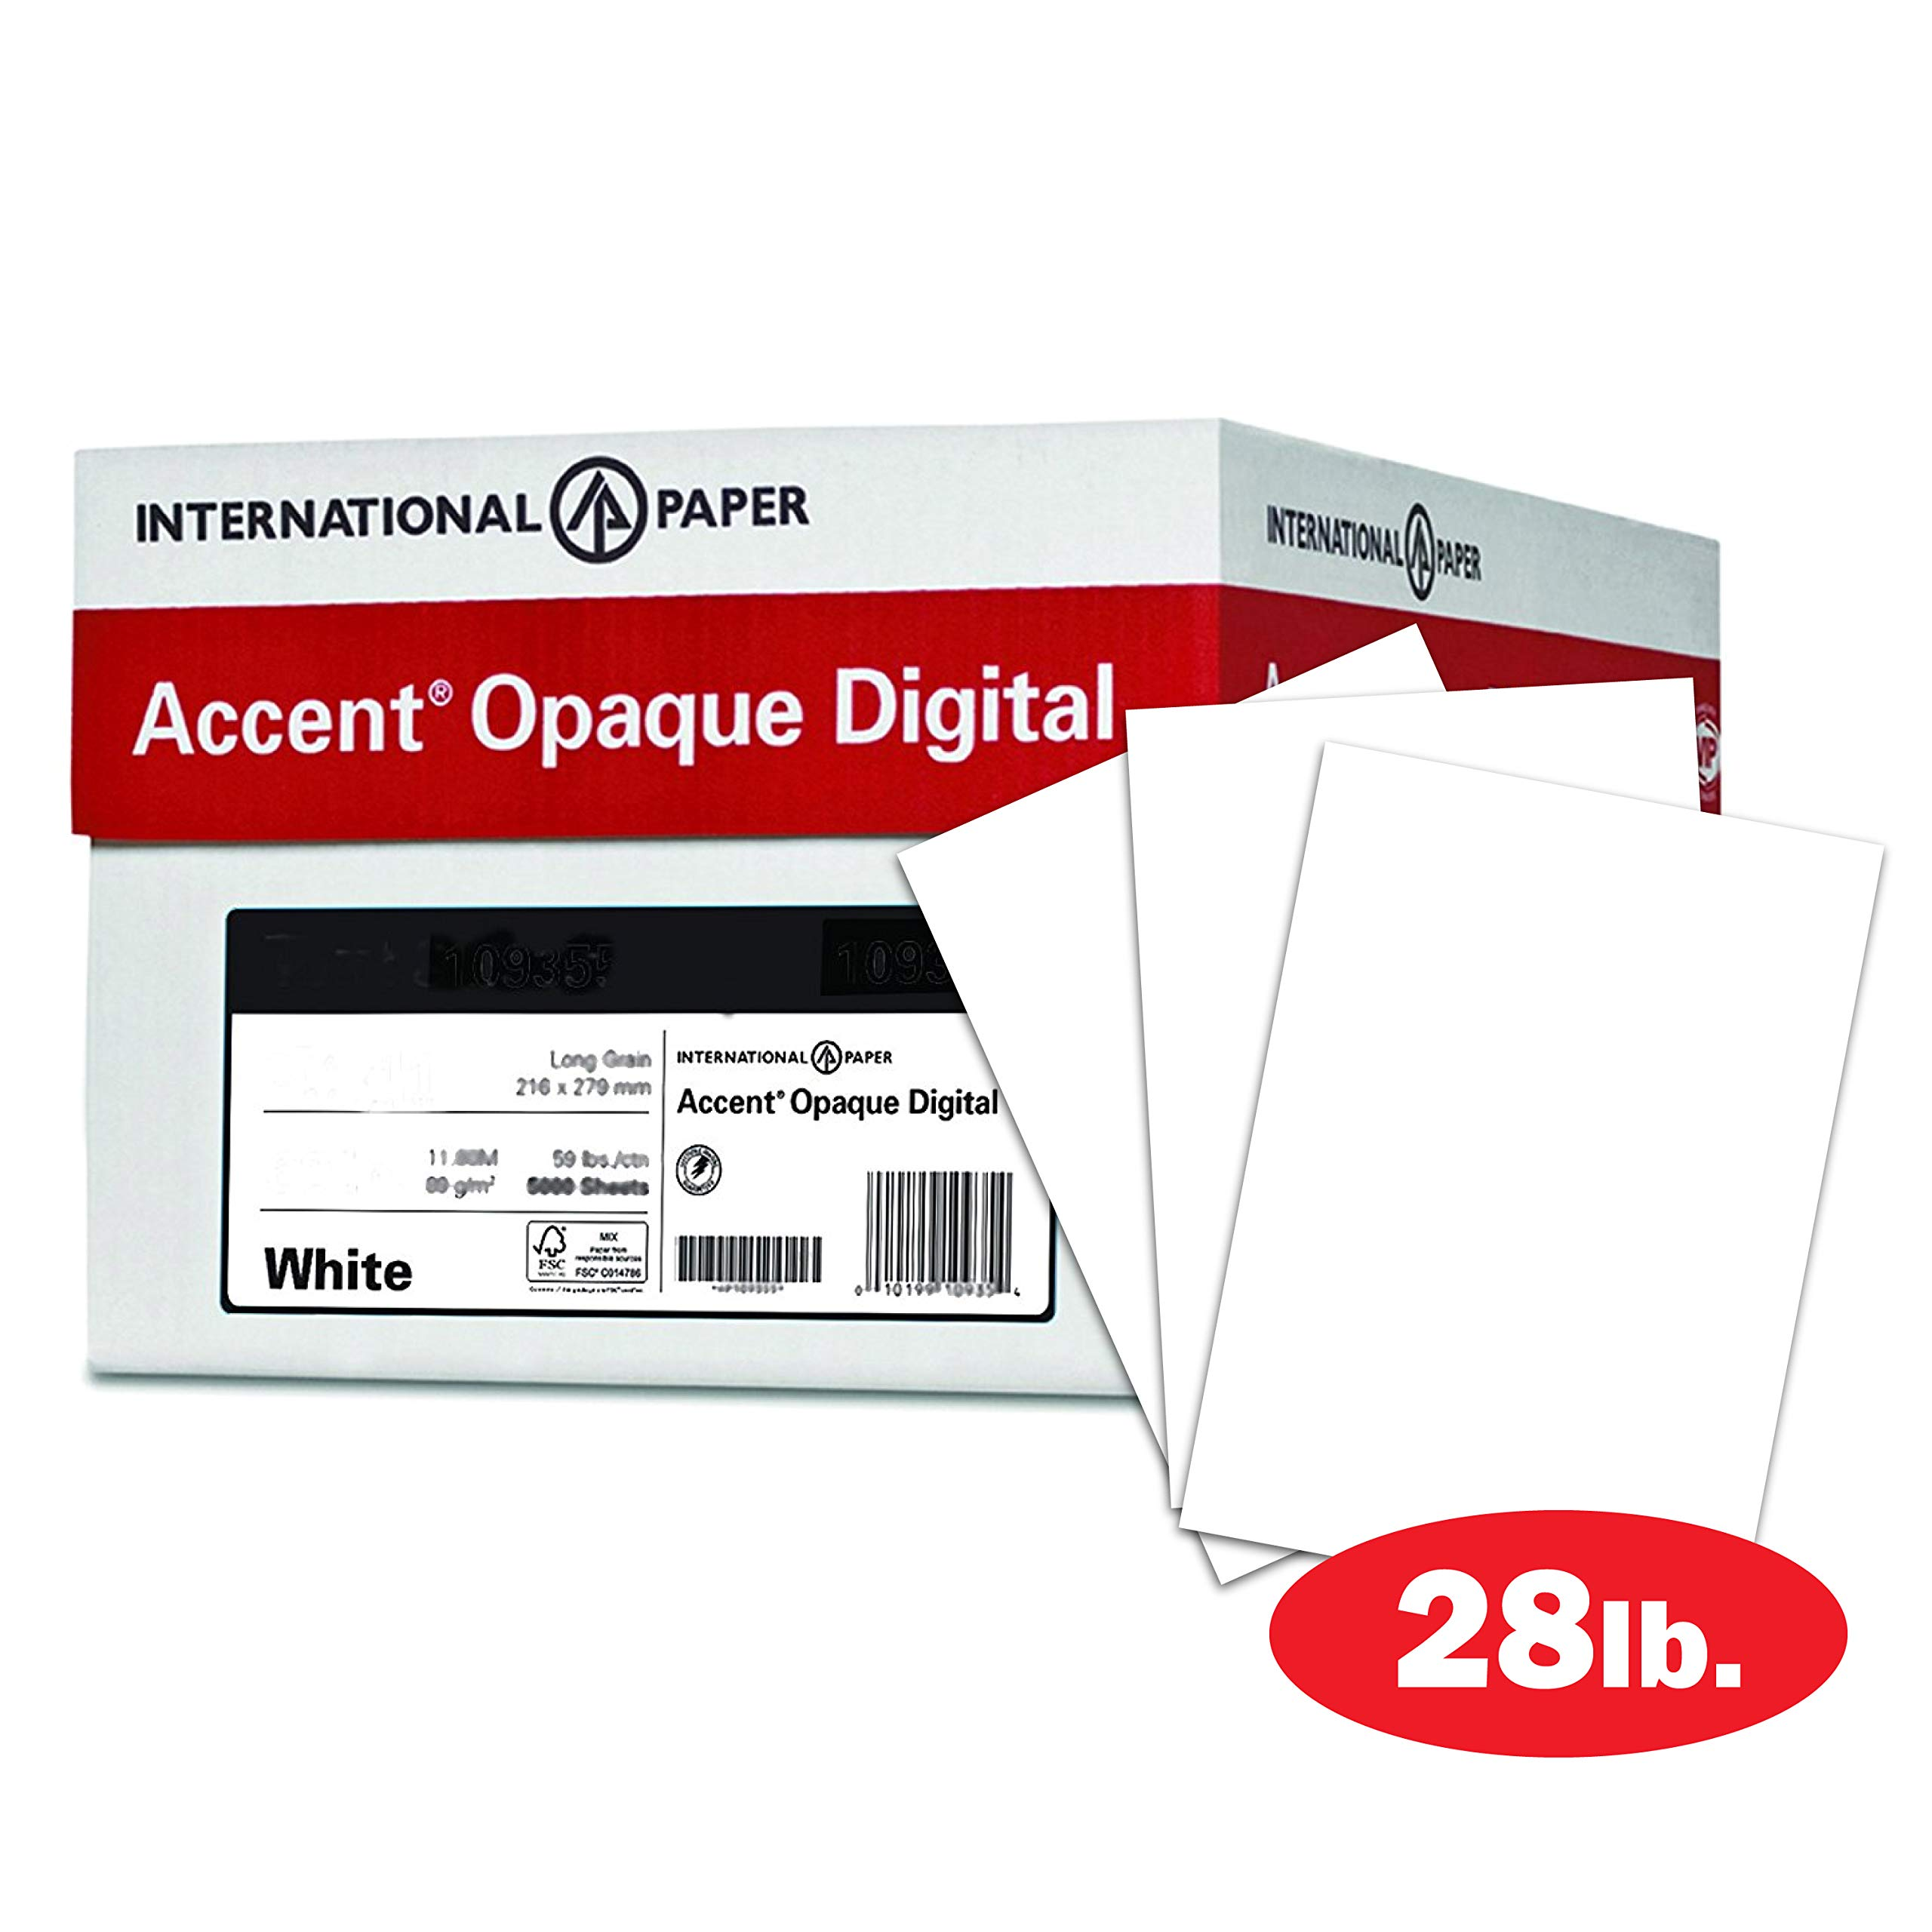 Accent Opaque 28lb White Paper, 70lb Paper Text, 104 gsm, 12x18 Paper, 97 Bright, 4 Ream Case / 1,600 Sheets, Super Smooth, Text Heavy Paper (189024C)